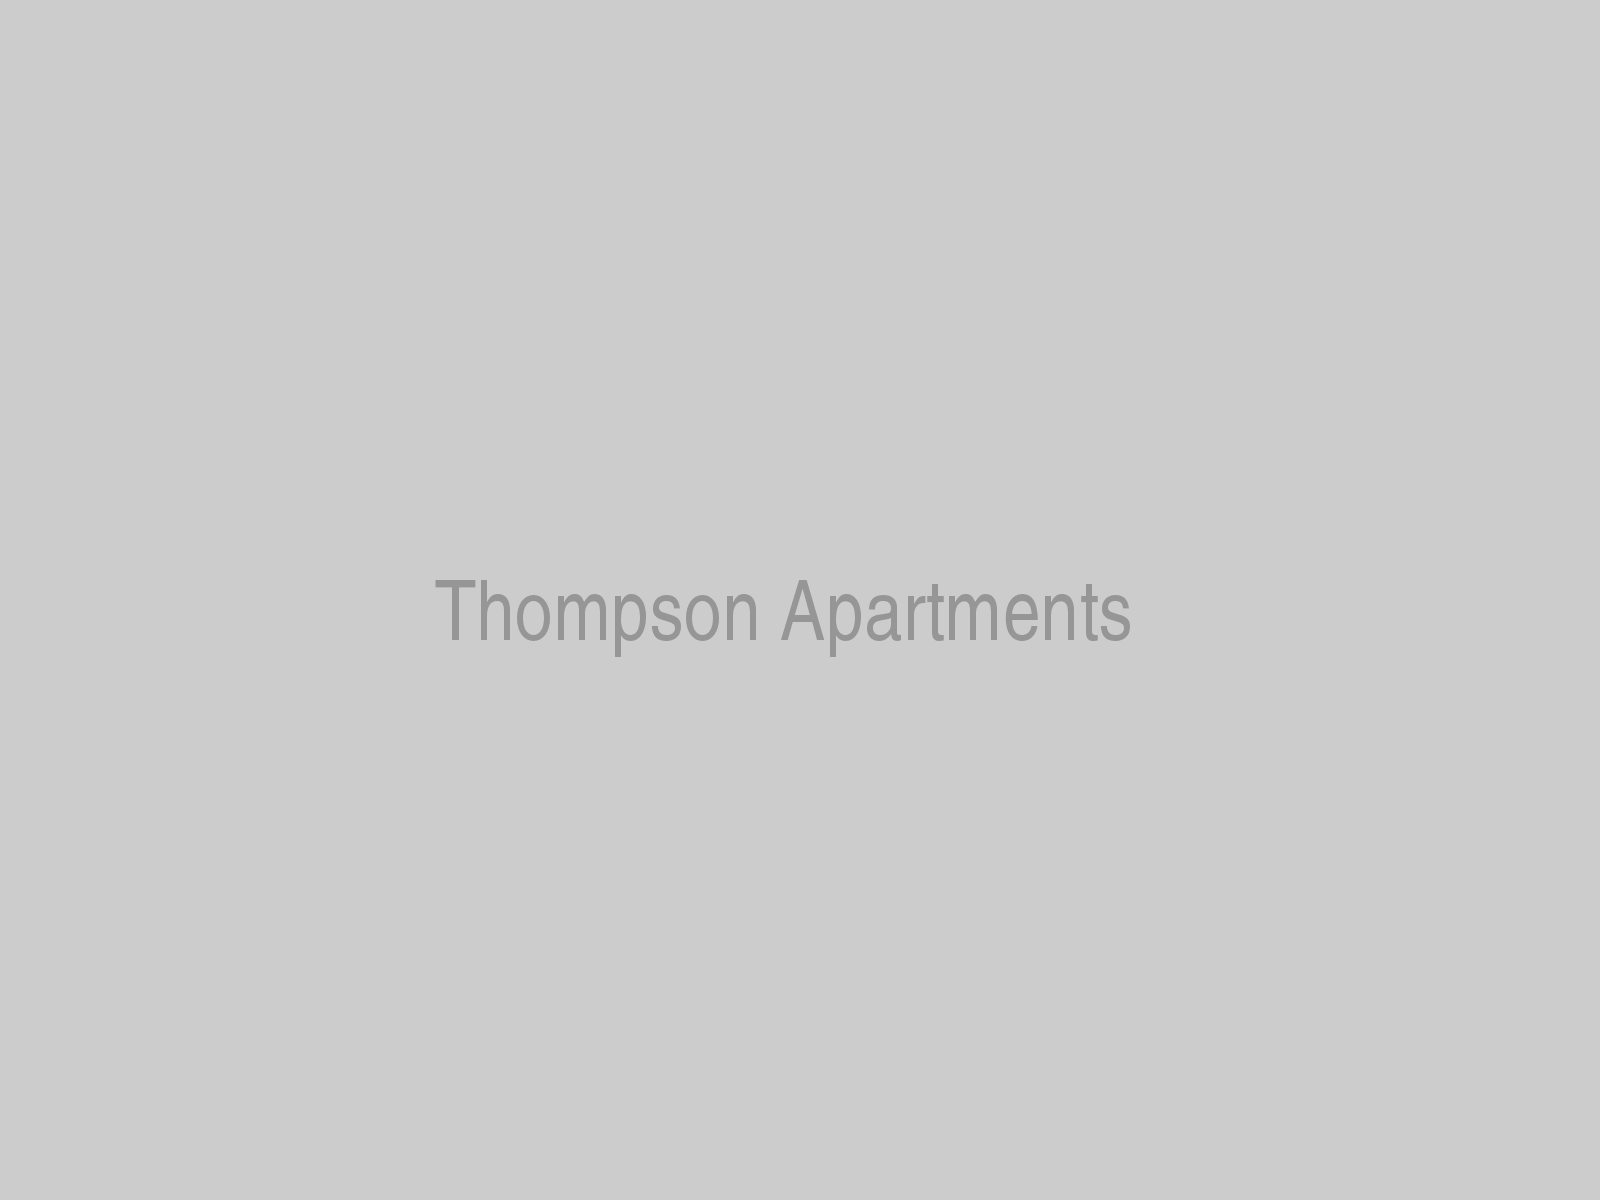 Thompson Apartments